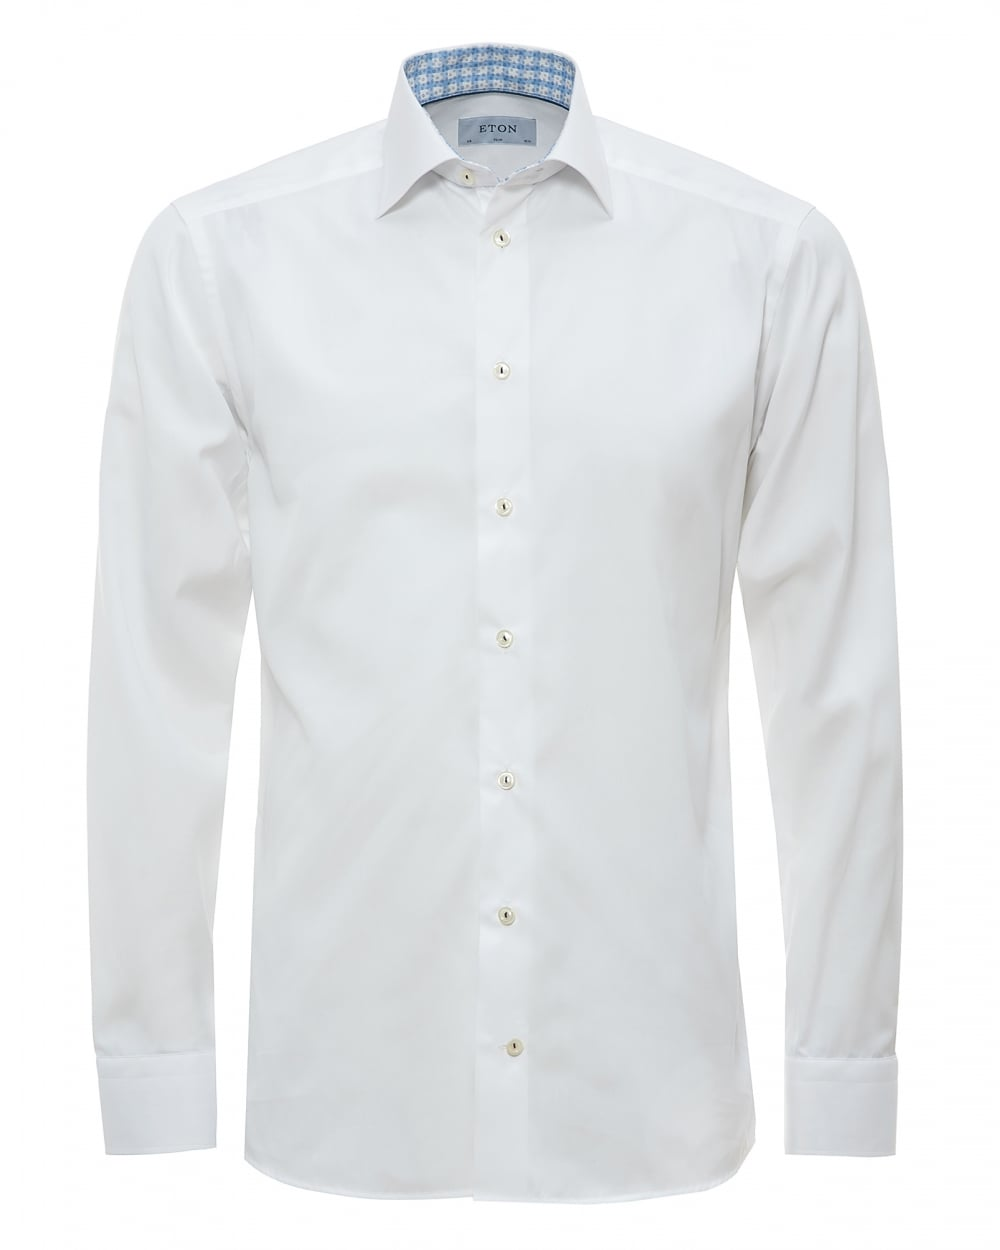 Eton Shirts Mens Contrast Collar And Cuff White Shirt